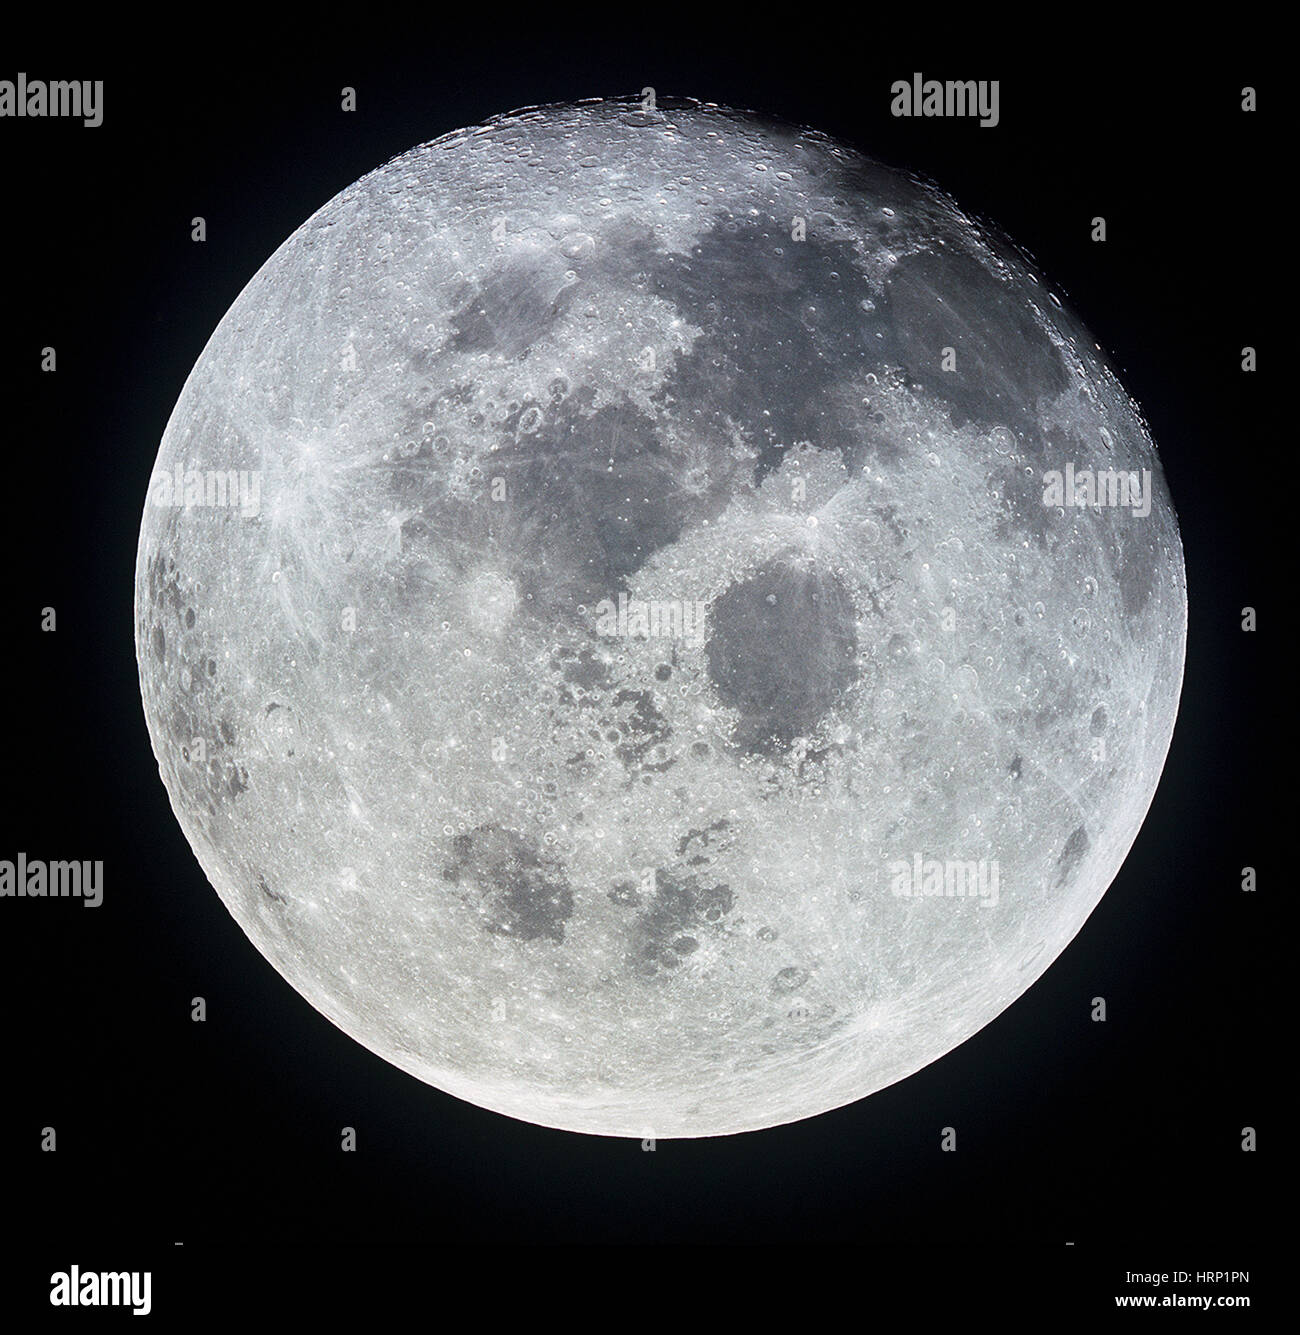 Apollo 11, Full Moon, 1969 - Stock Image